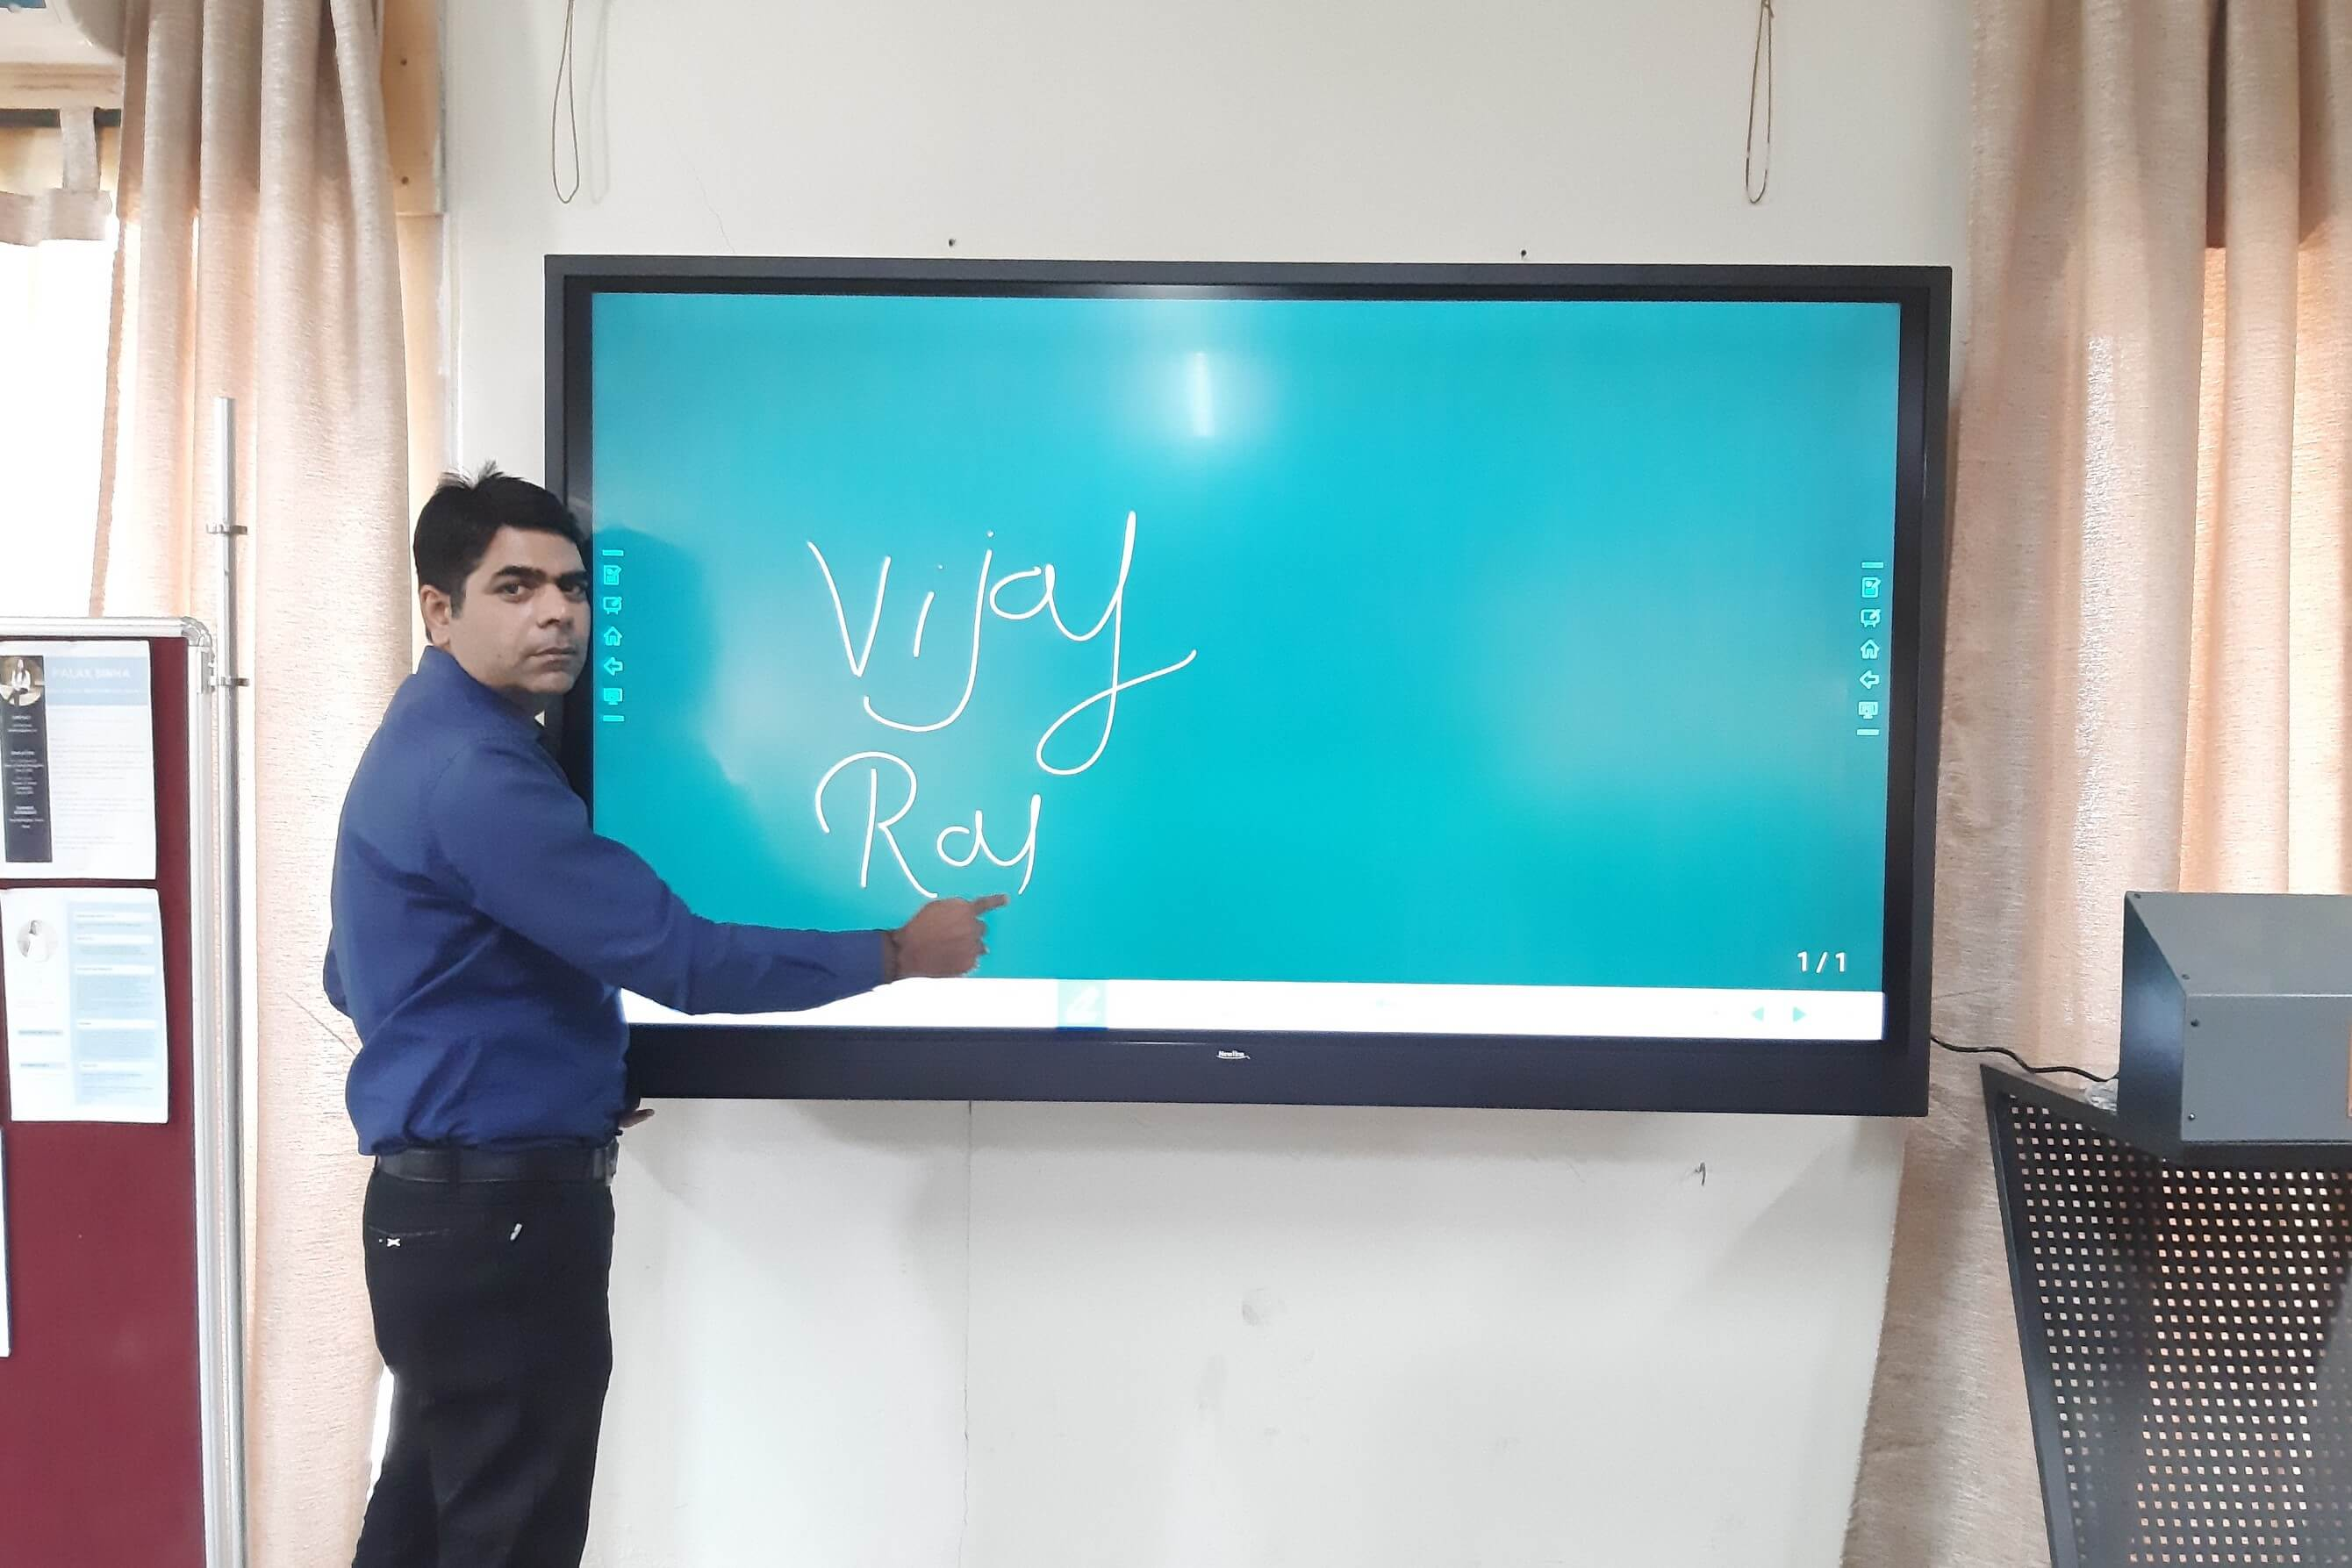 person interacting on touch screen